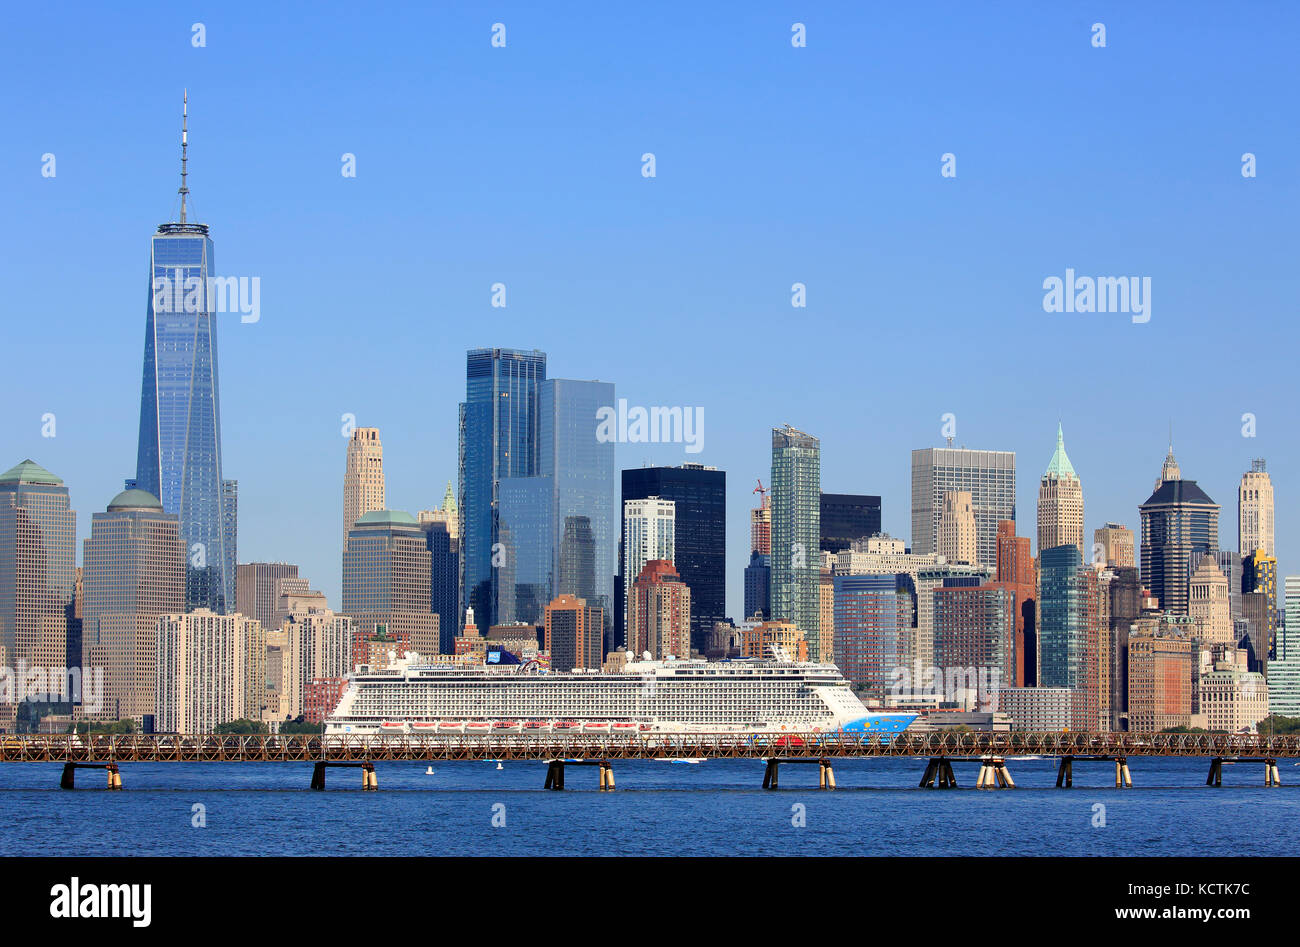 Norwegian Breakaway Cruise ship in Hudson River with the skyline of Lower Manhattan financial district in the background.New - Stock Image